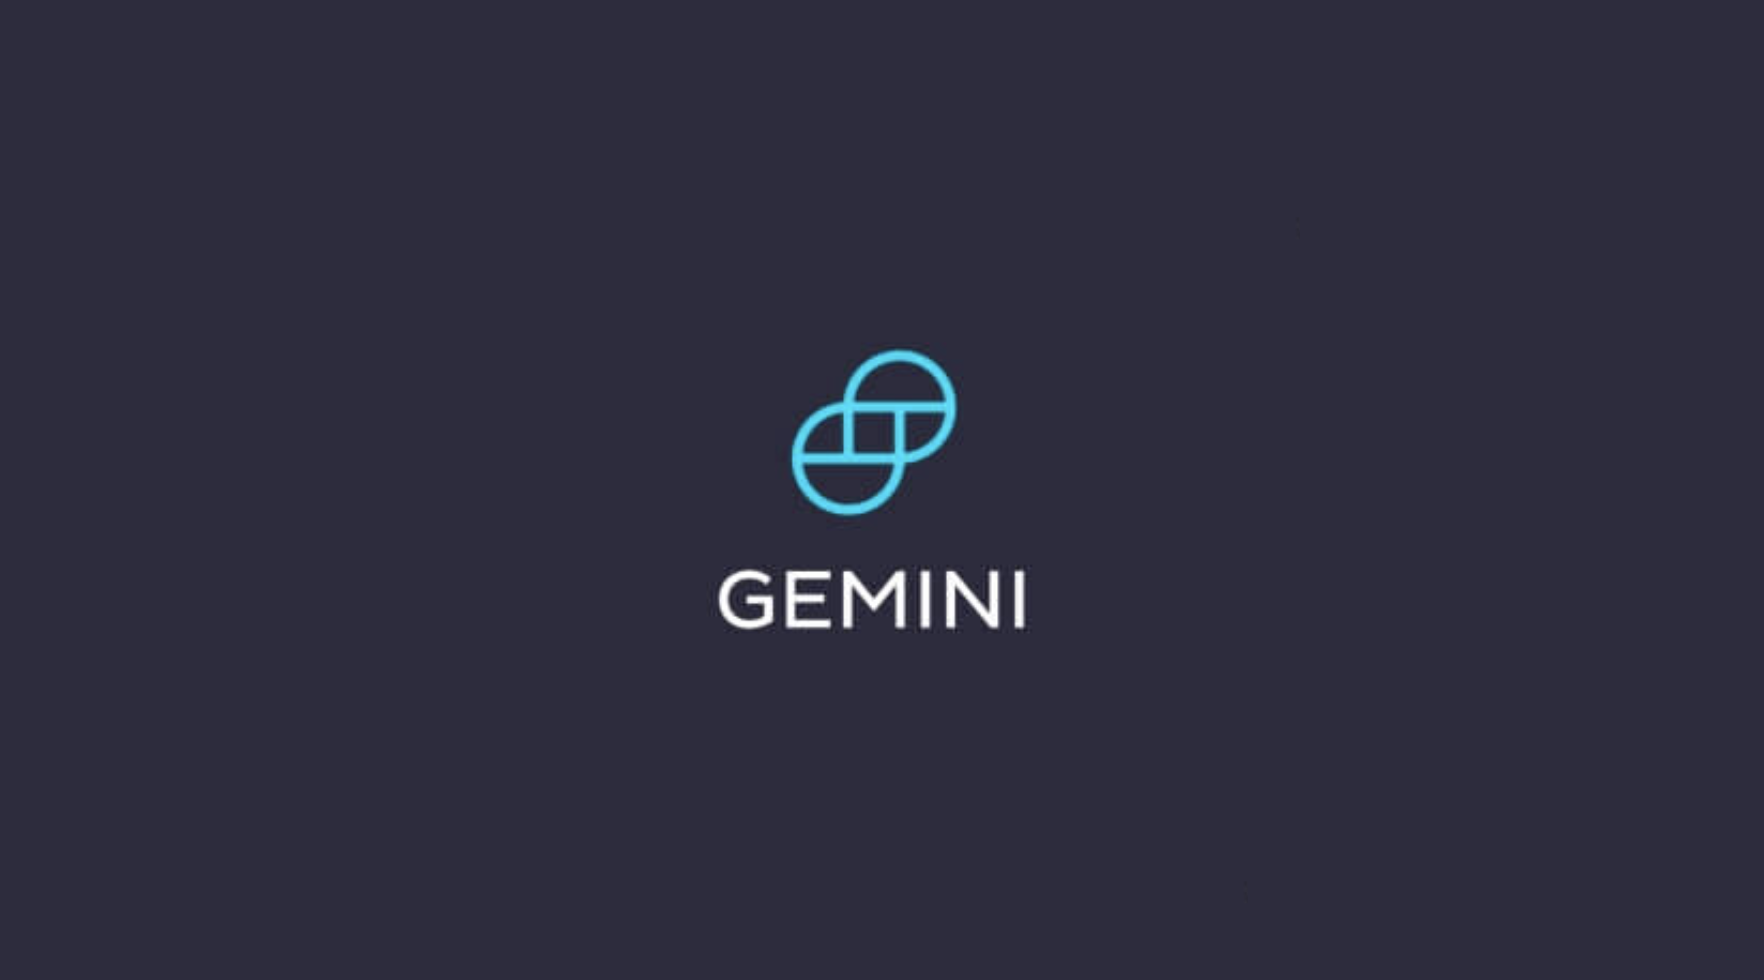 That the gemini exchange